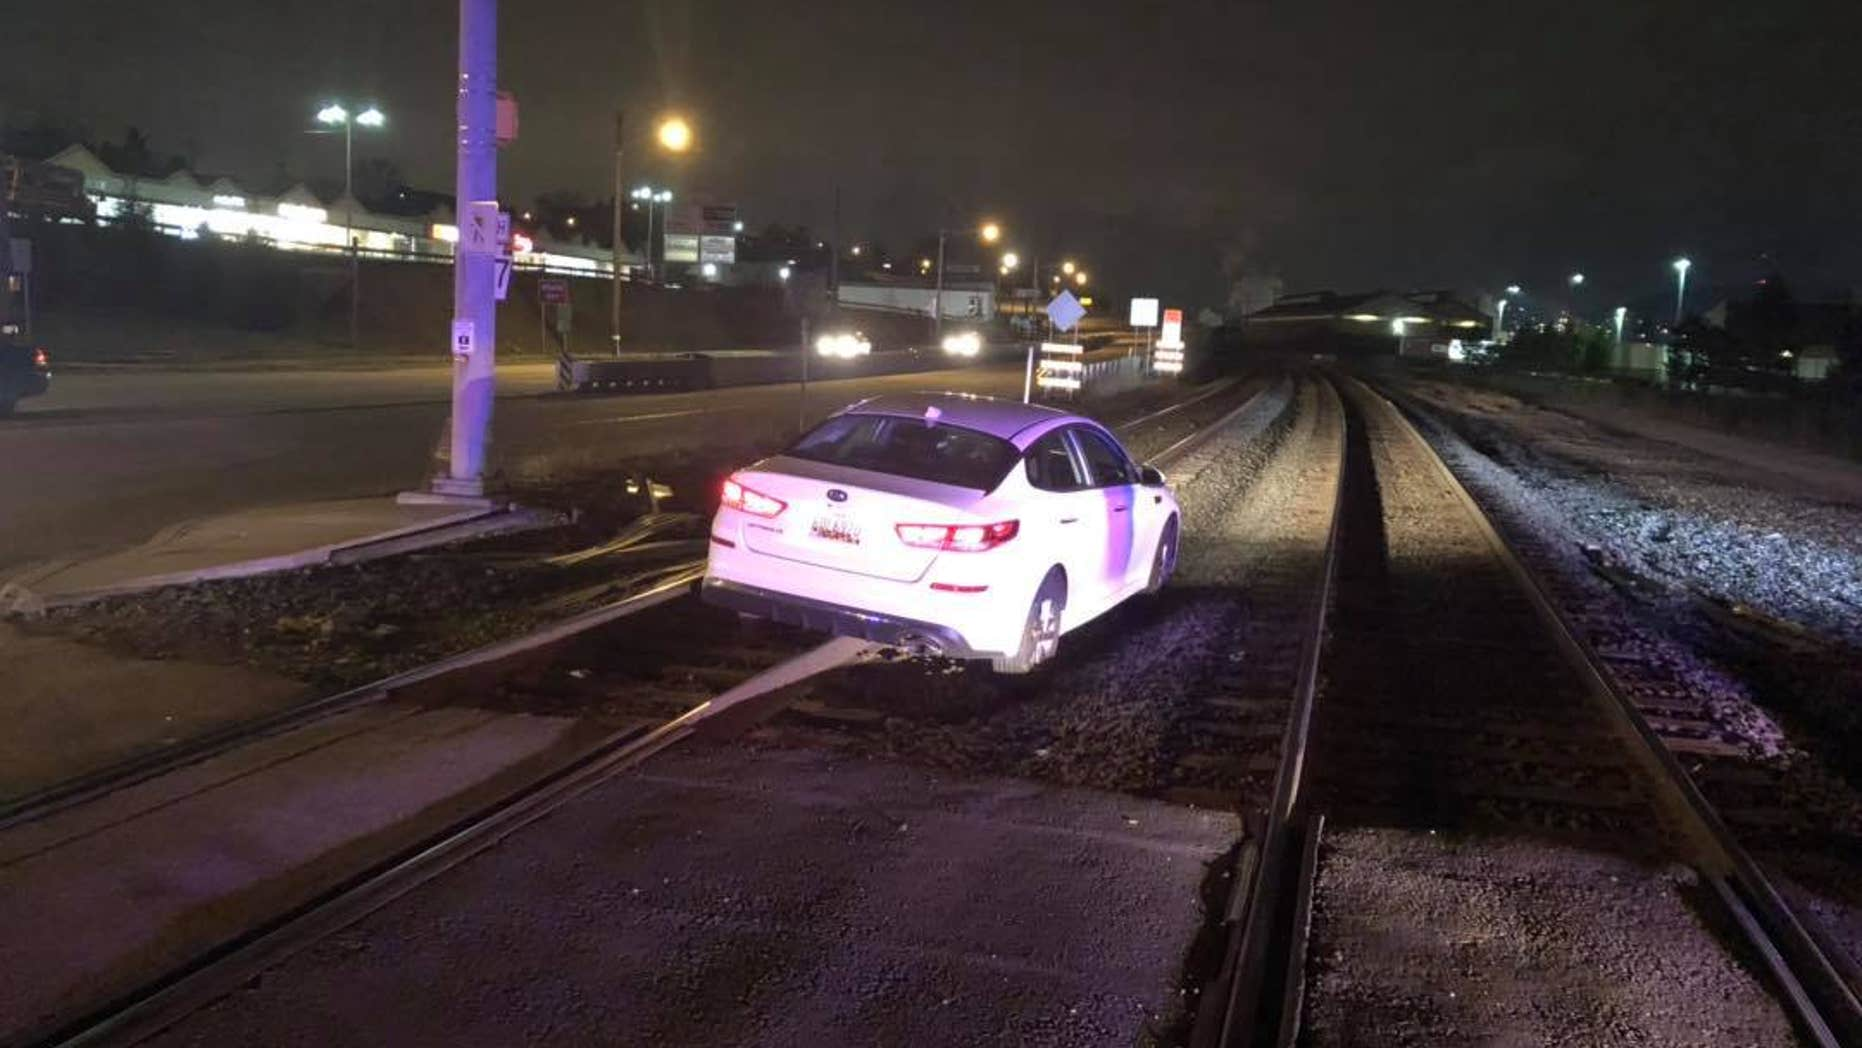 """A woman in Pennsylvania was cited for careless driving after she drove onto train tracks because """"her GPS advised her to go this way,"""" police said."""